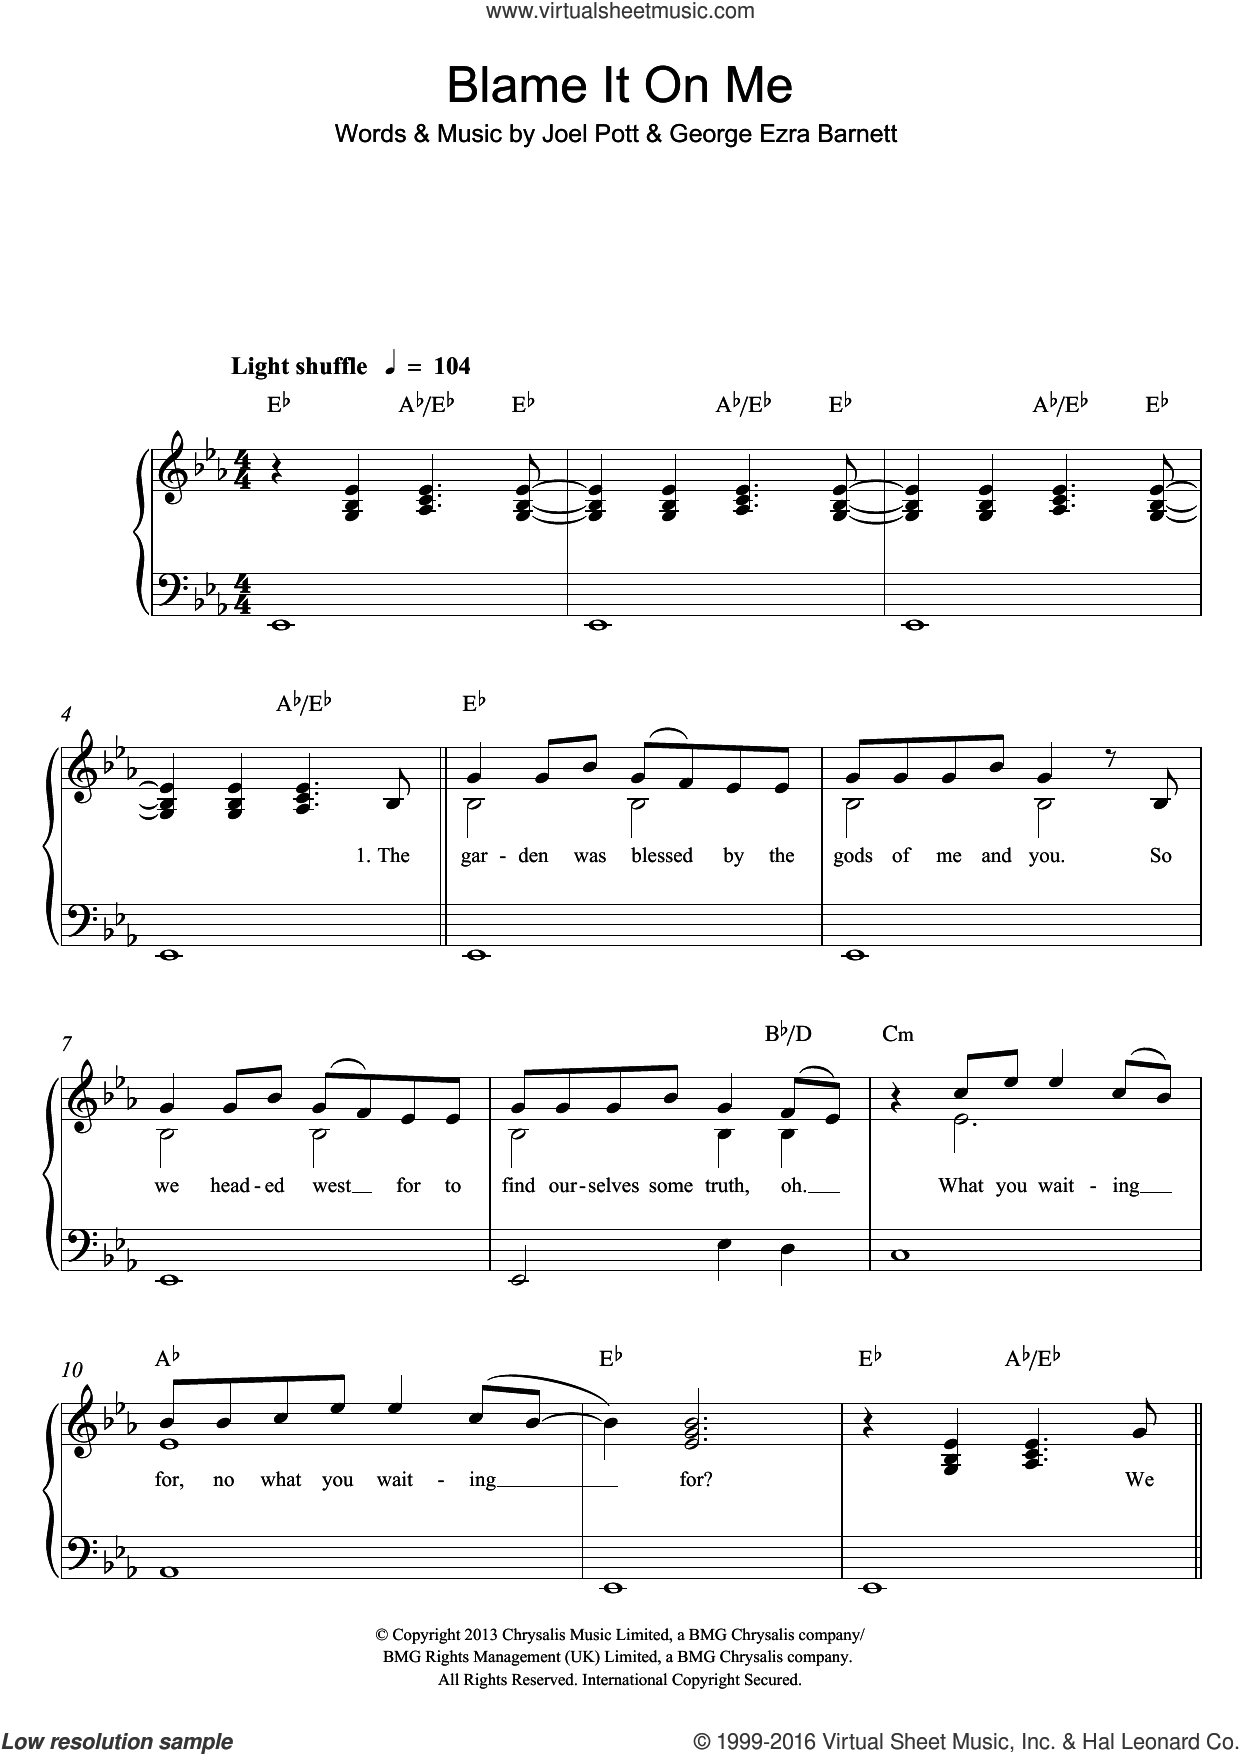 Blame It On Me sheet music for piano solo by George Ezra, George Ezra Barnett and Joel Pott, easy skill level